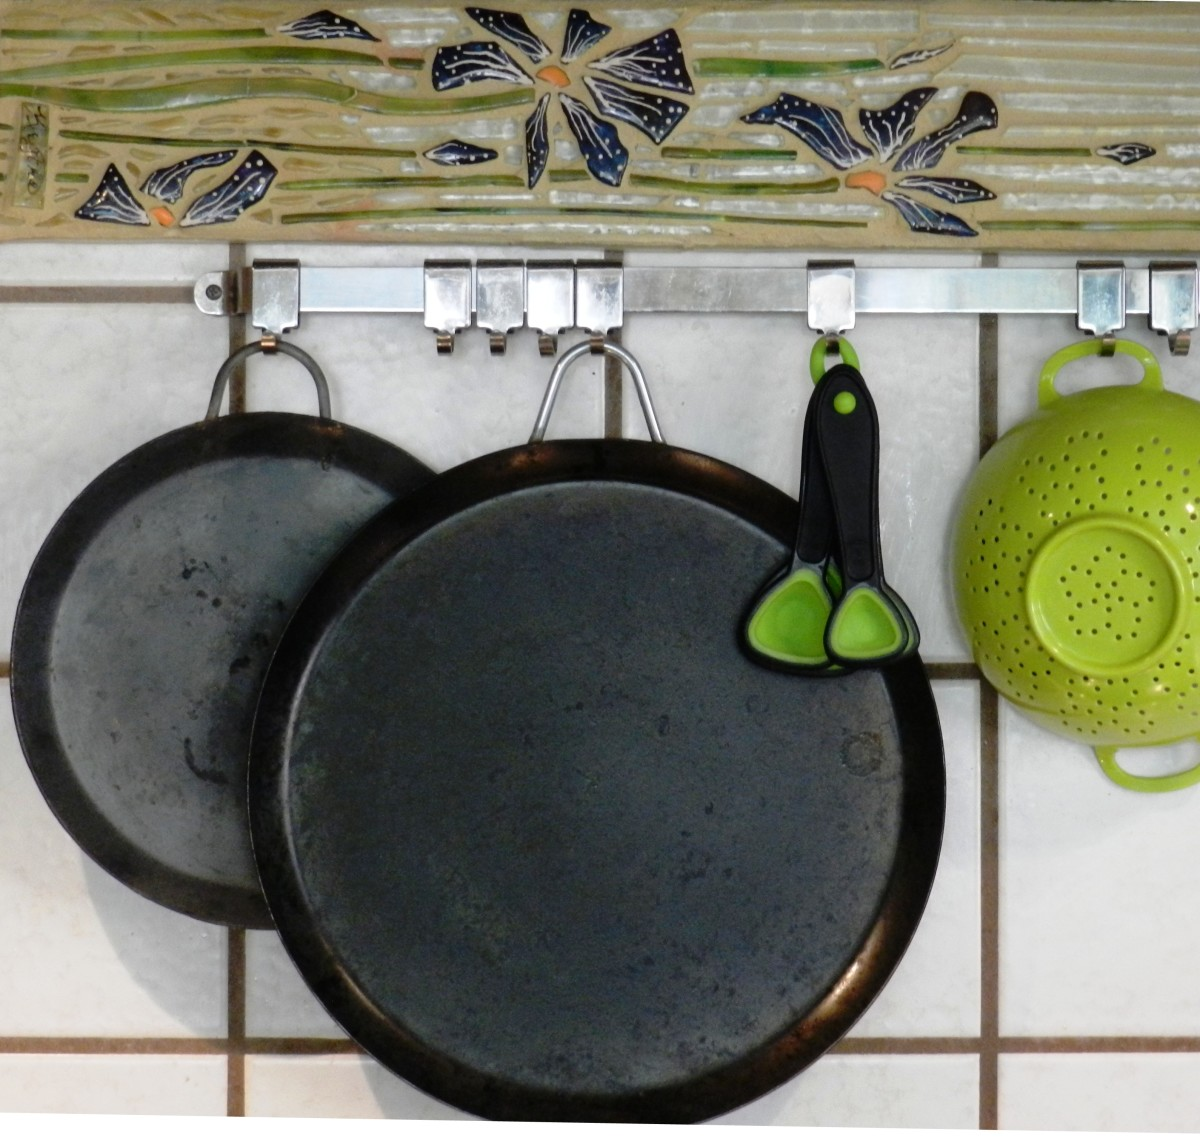 No-hassle, lightweight comal for tortillas.